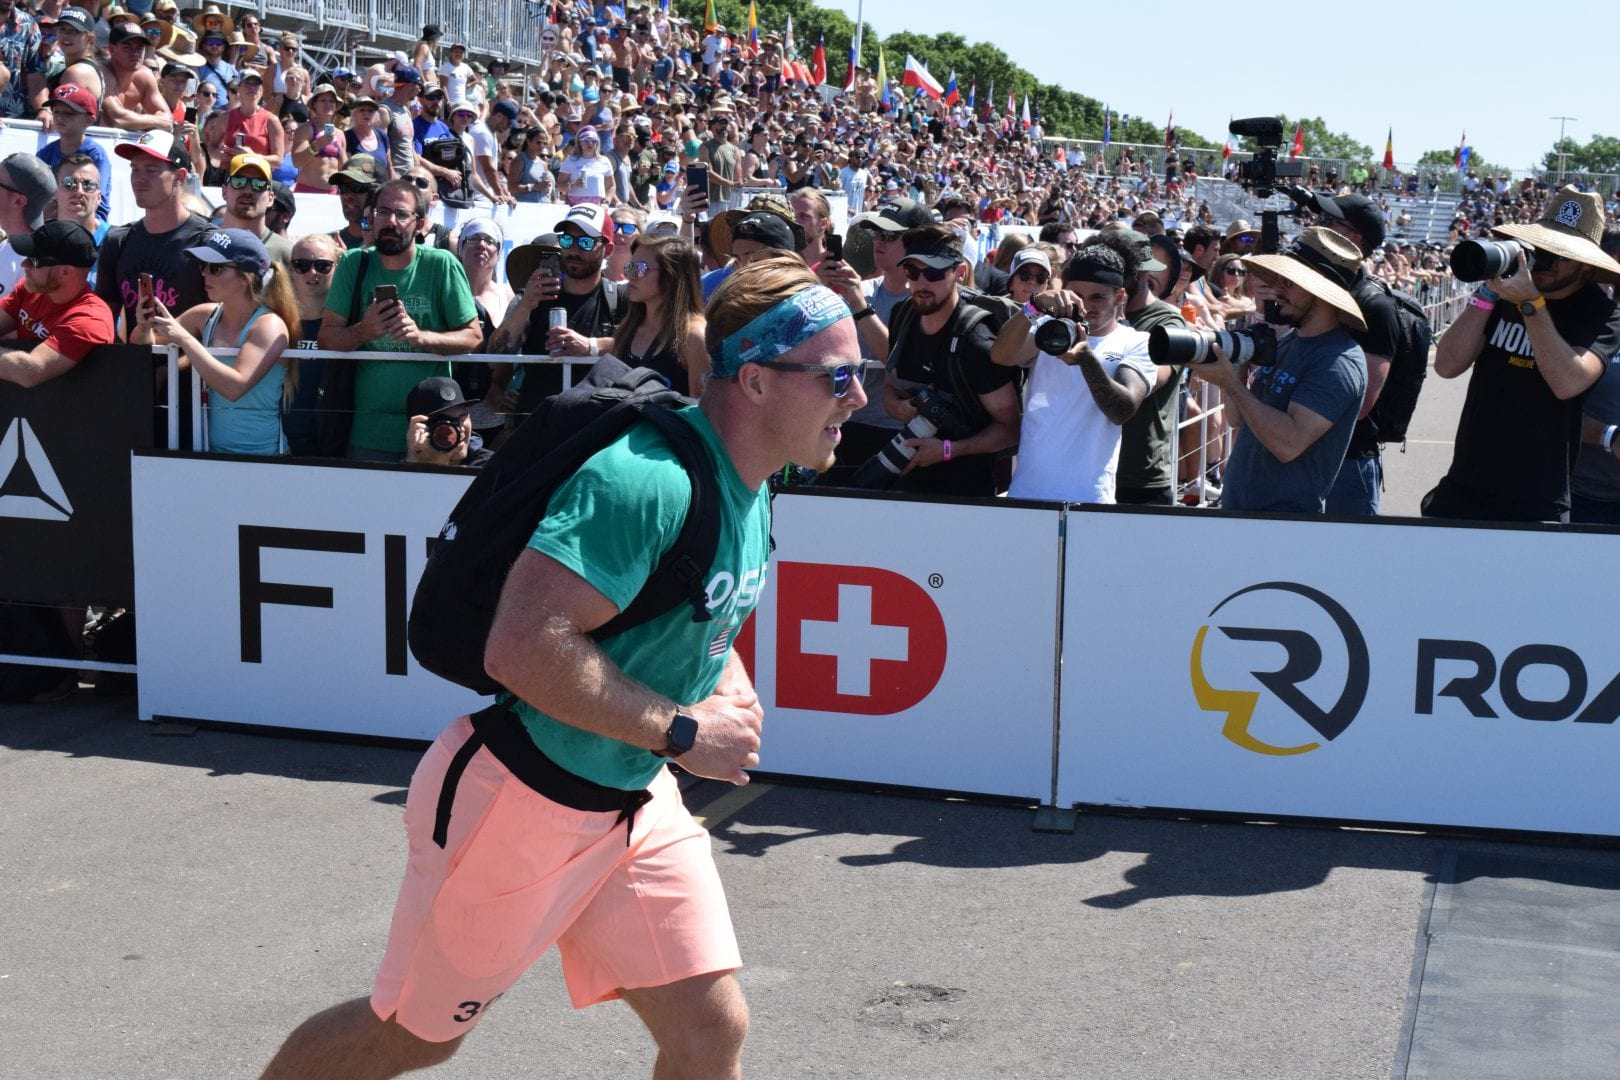 Noah Ohlsen completes the Ruck Run event at the 2019 CrossFIt Games.